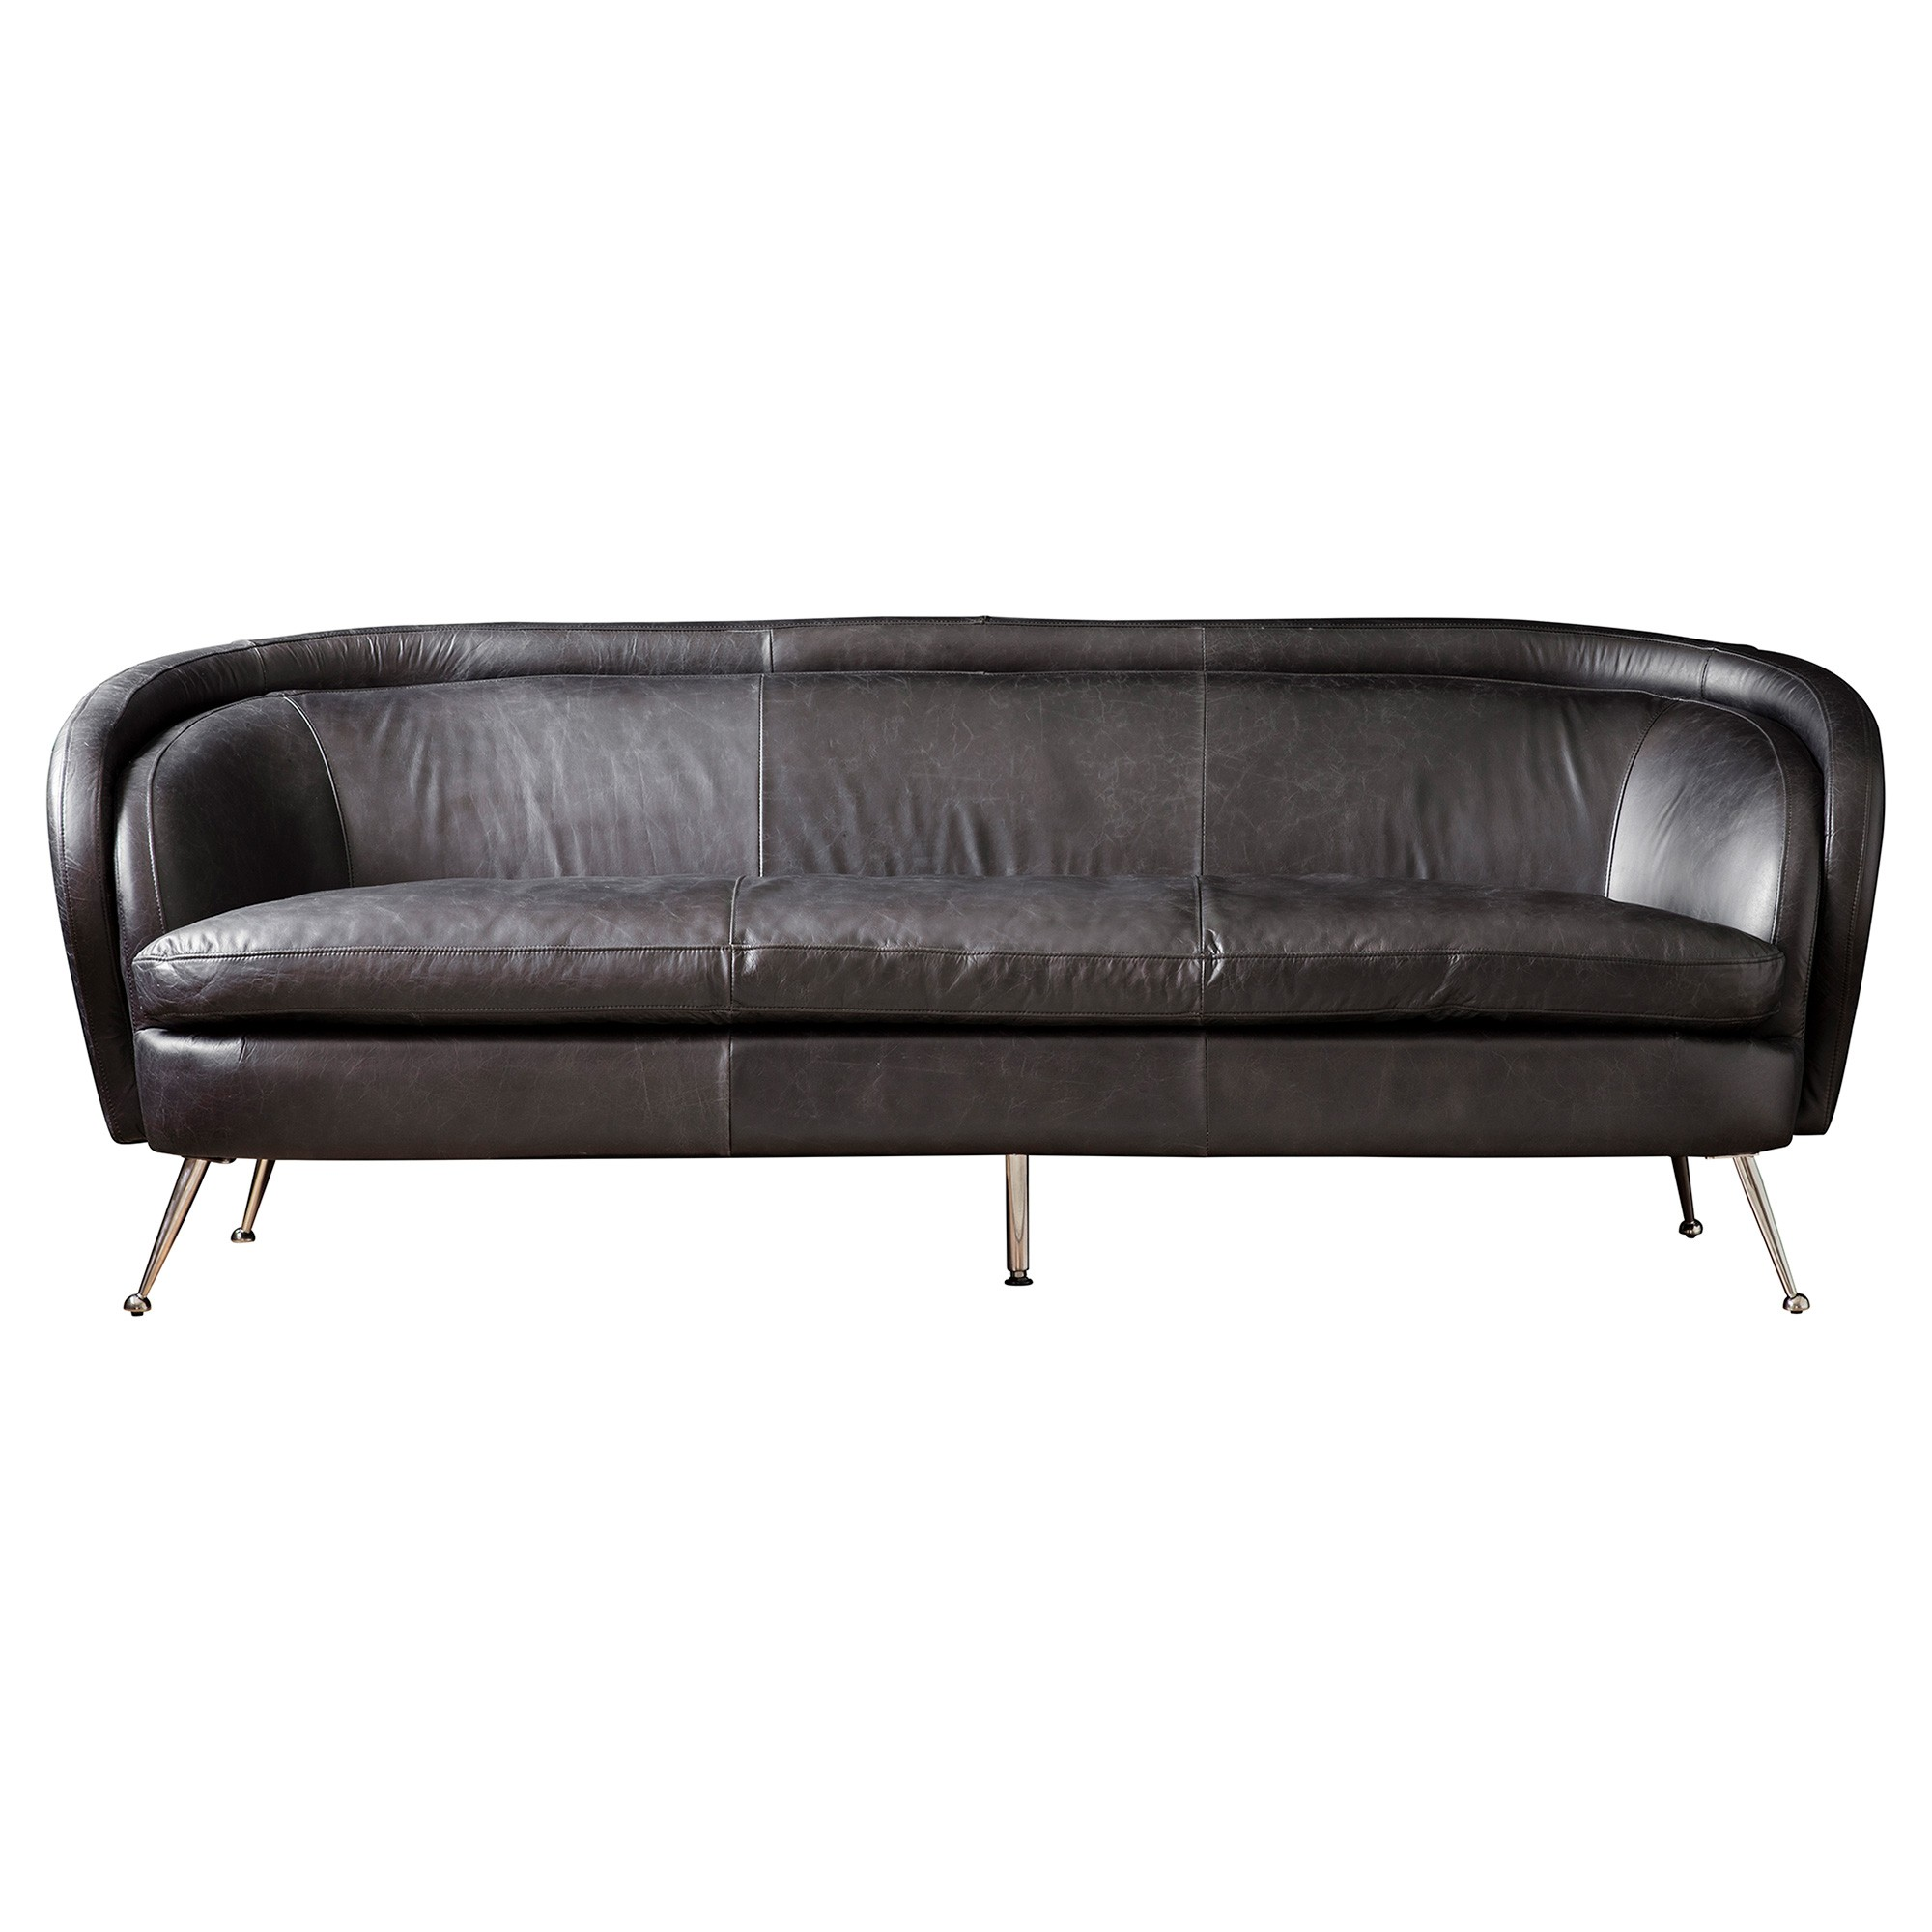 Tania Leather Sofa, 3 Seater, Black